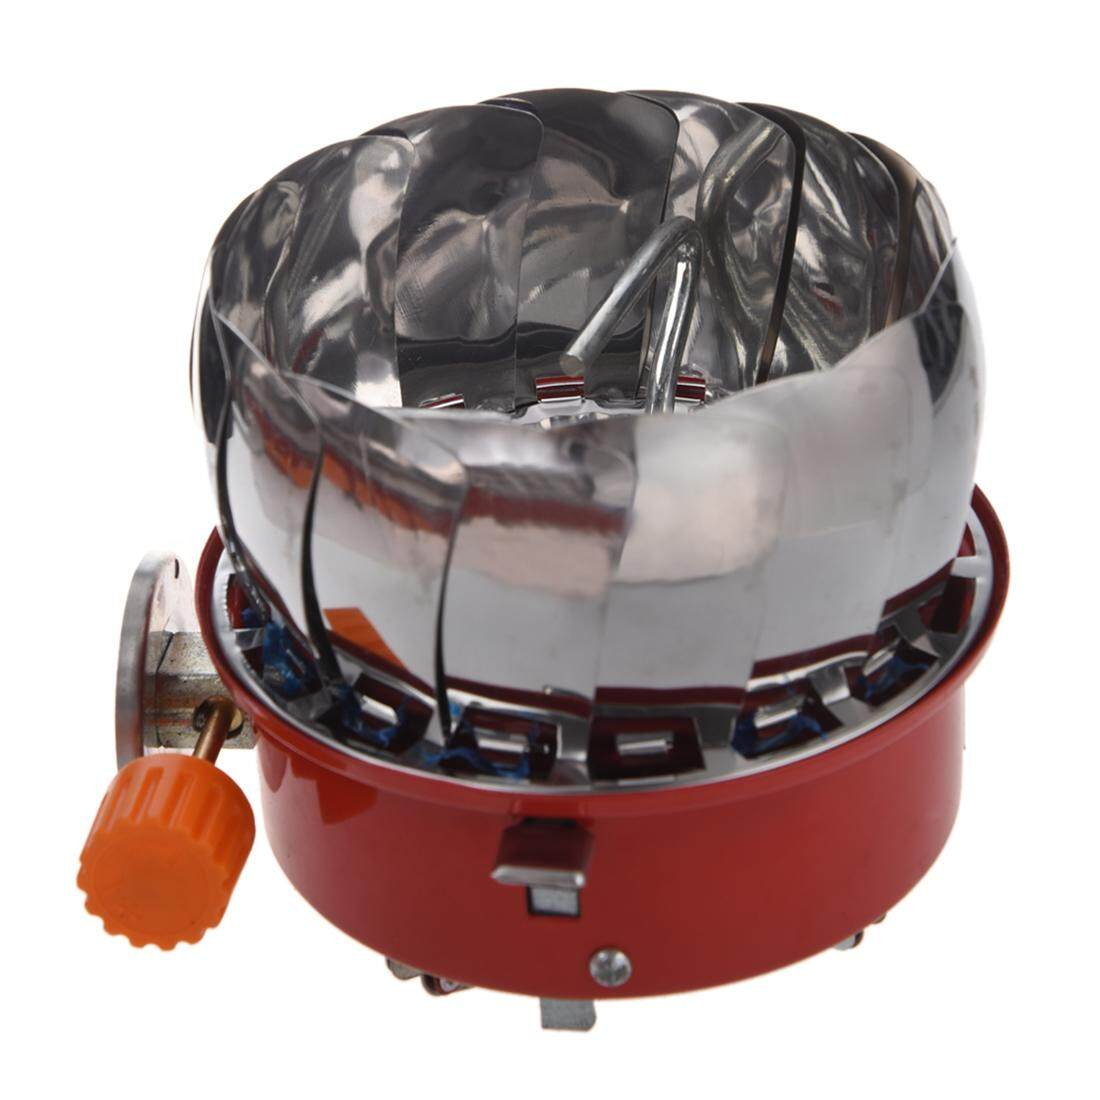 Windproof Stove Cooker Cookware Gas Burner For Camping Picnic Cookout Bbq By Yomichew.